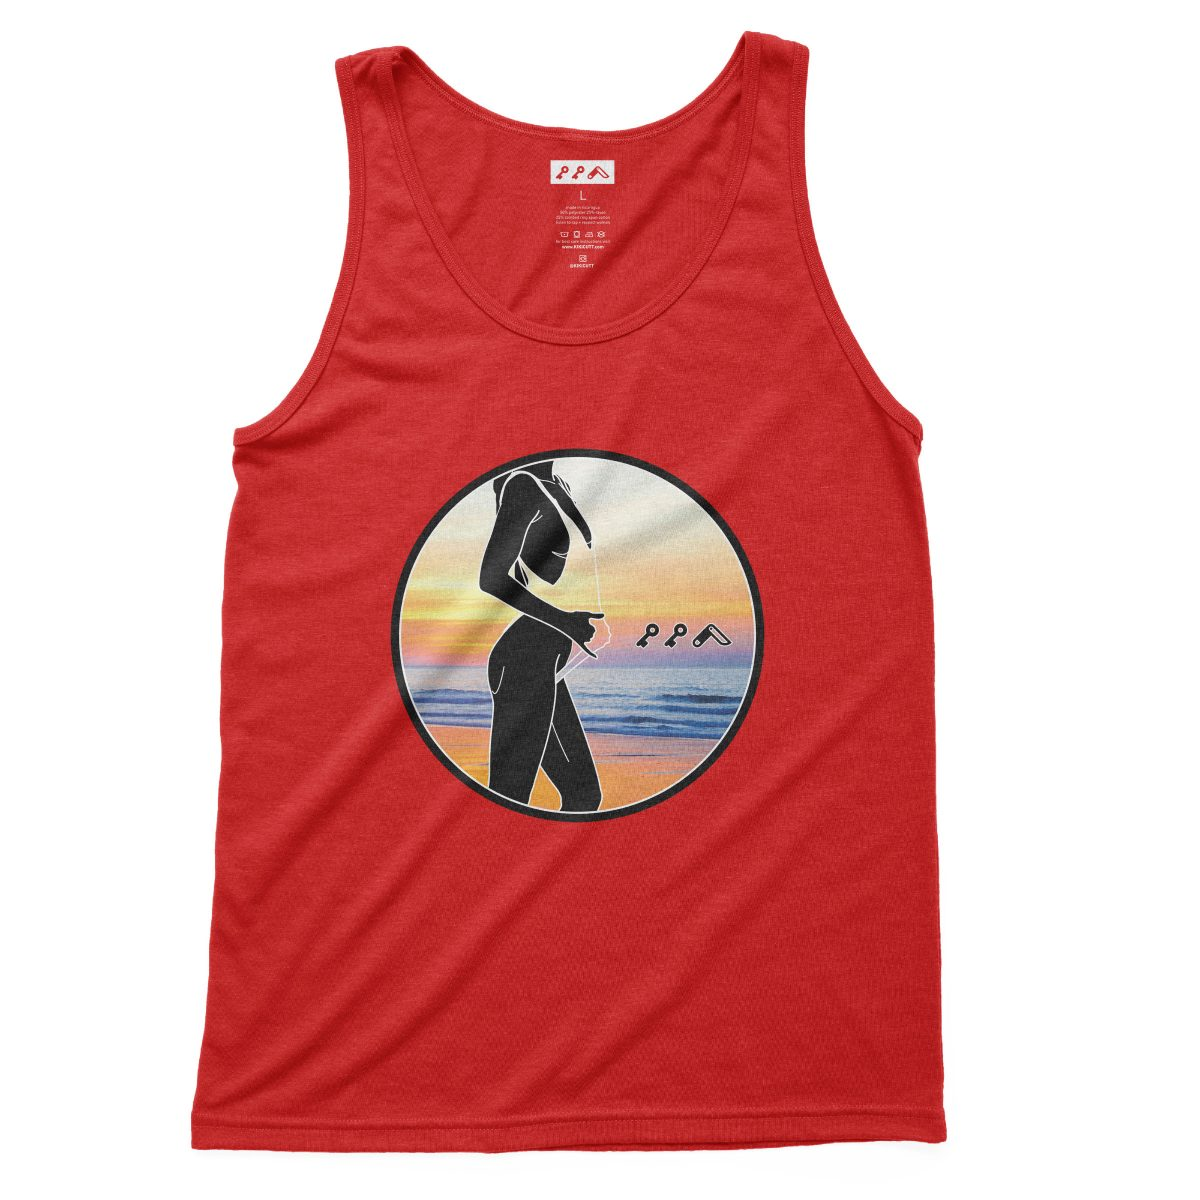 """BAE WATCH"" sexy music festival tank top in red at kikicutt.com"